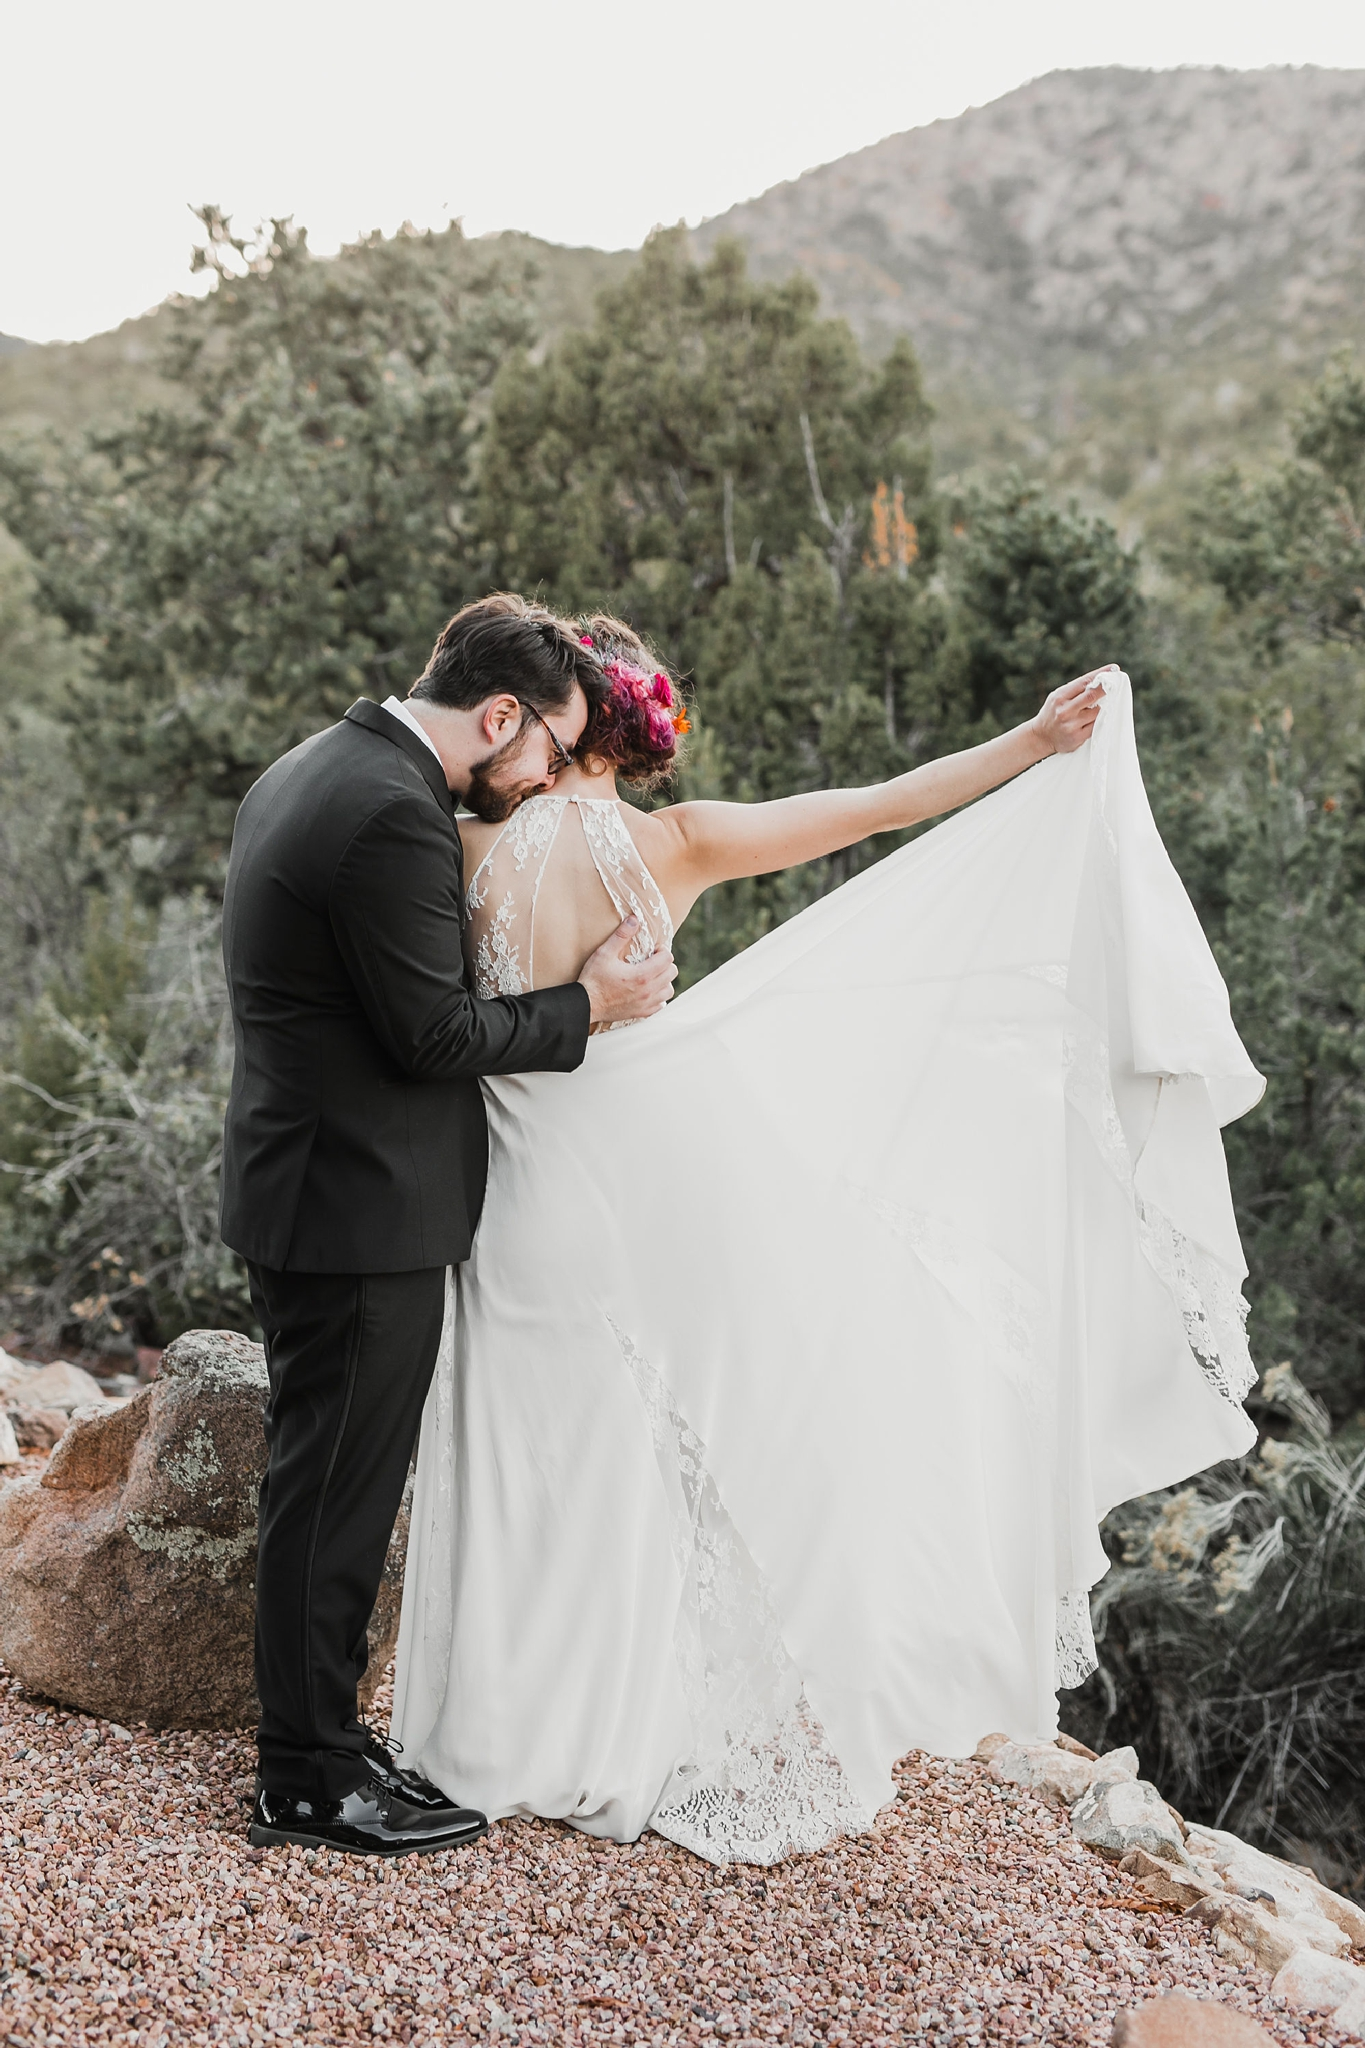 Alicia+lucia+photography+-+albuquerque+wedding+photographer+-+santa+fe+wedding+photography+-+new+mexico+wedding+photographer+-+new+mexico+wedding+-+engagement+-+santa+fe+wedding+-+hacienda+dona+andrea+-+hacienda+dona+andrea+wedding_0080.jpg